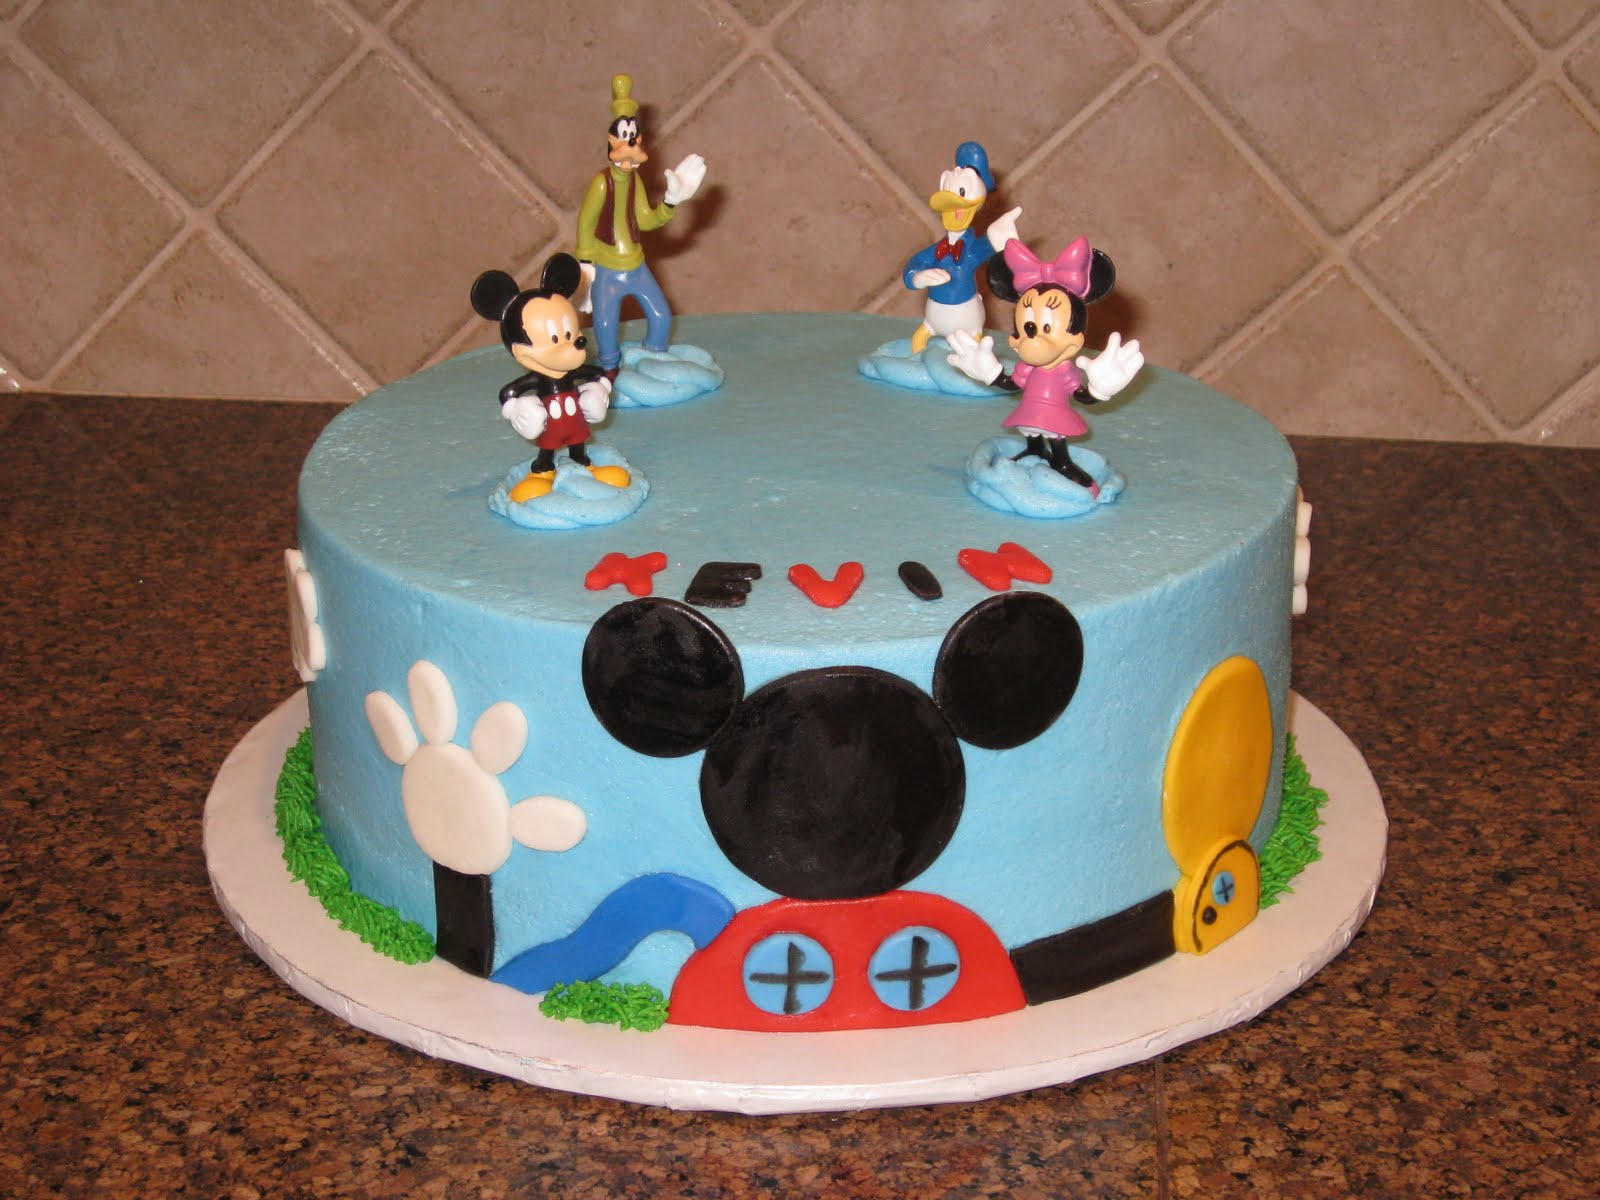 Mickey Mouse Images For Cake : Mickey Mouse Cake   Decoration Ideas Little Birthday Cakes